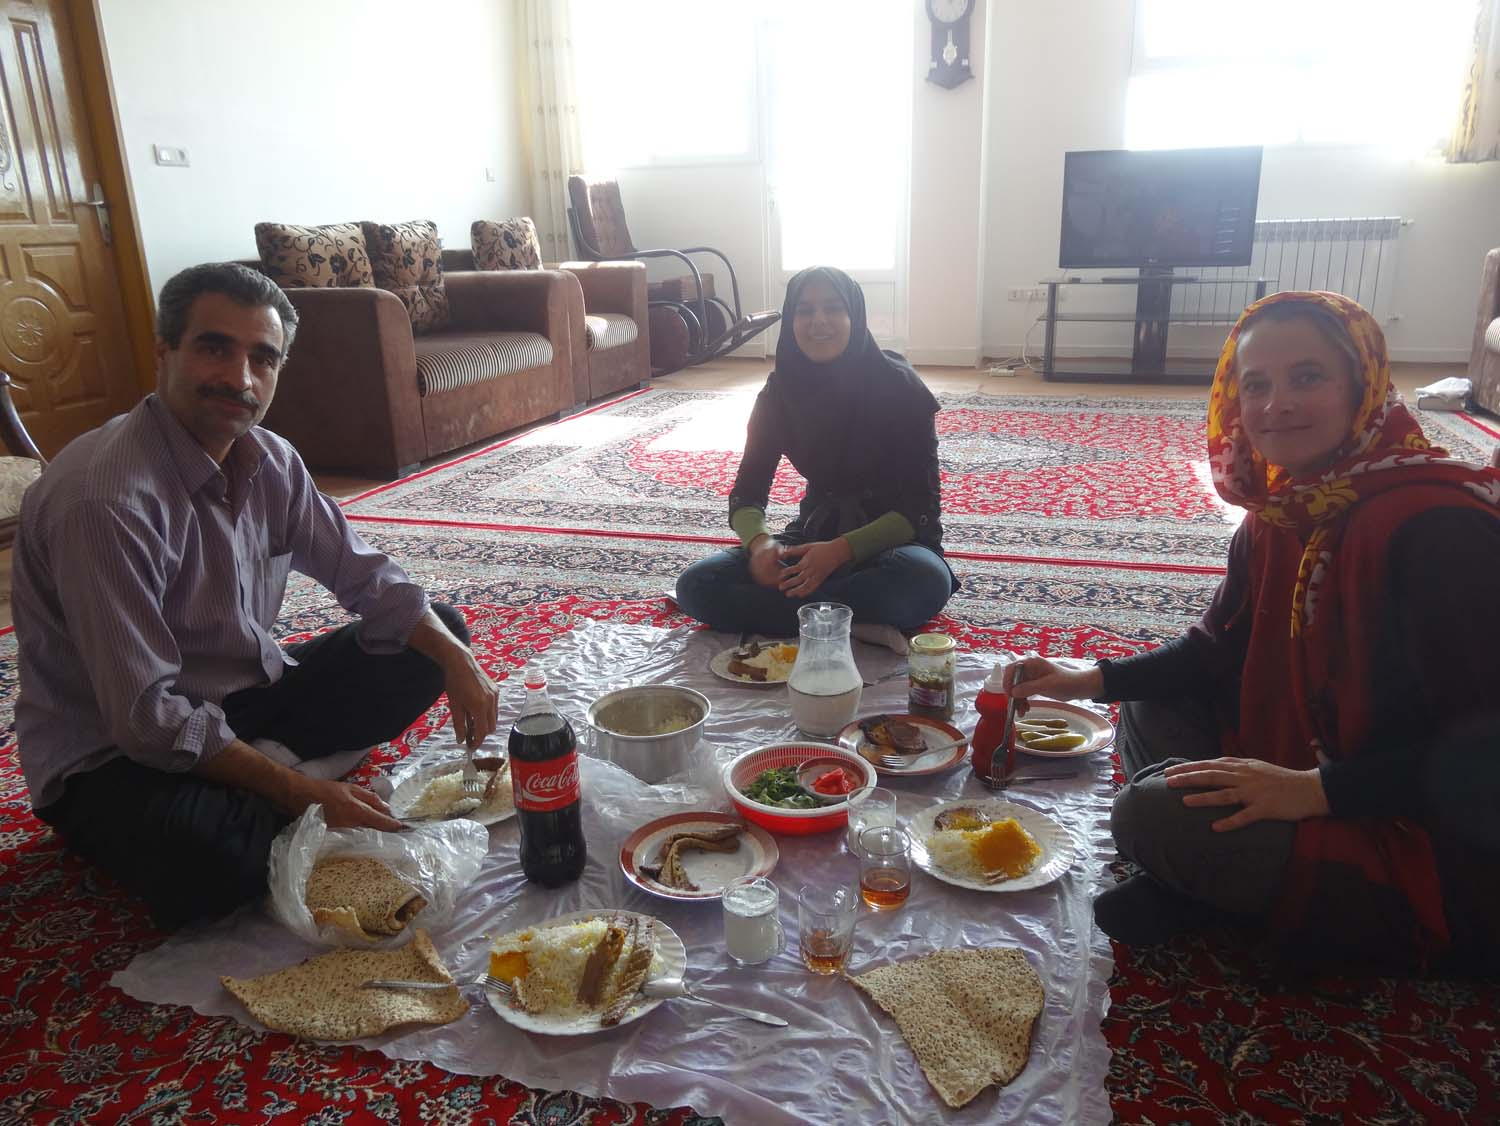 a few minutes later we share lunch with her and Mehdi, her father